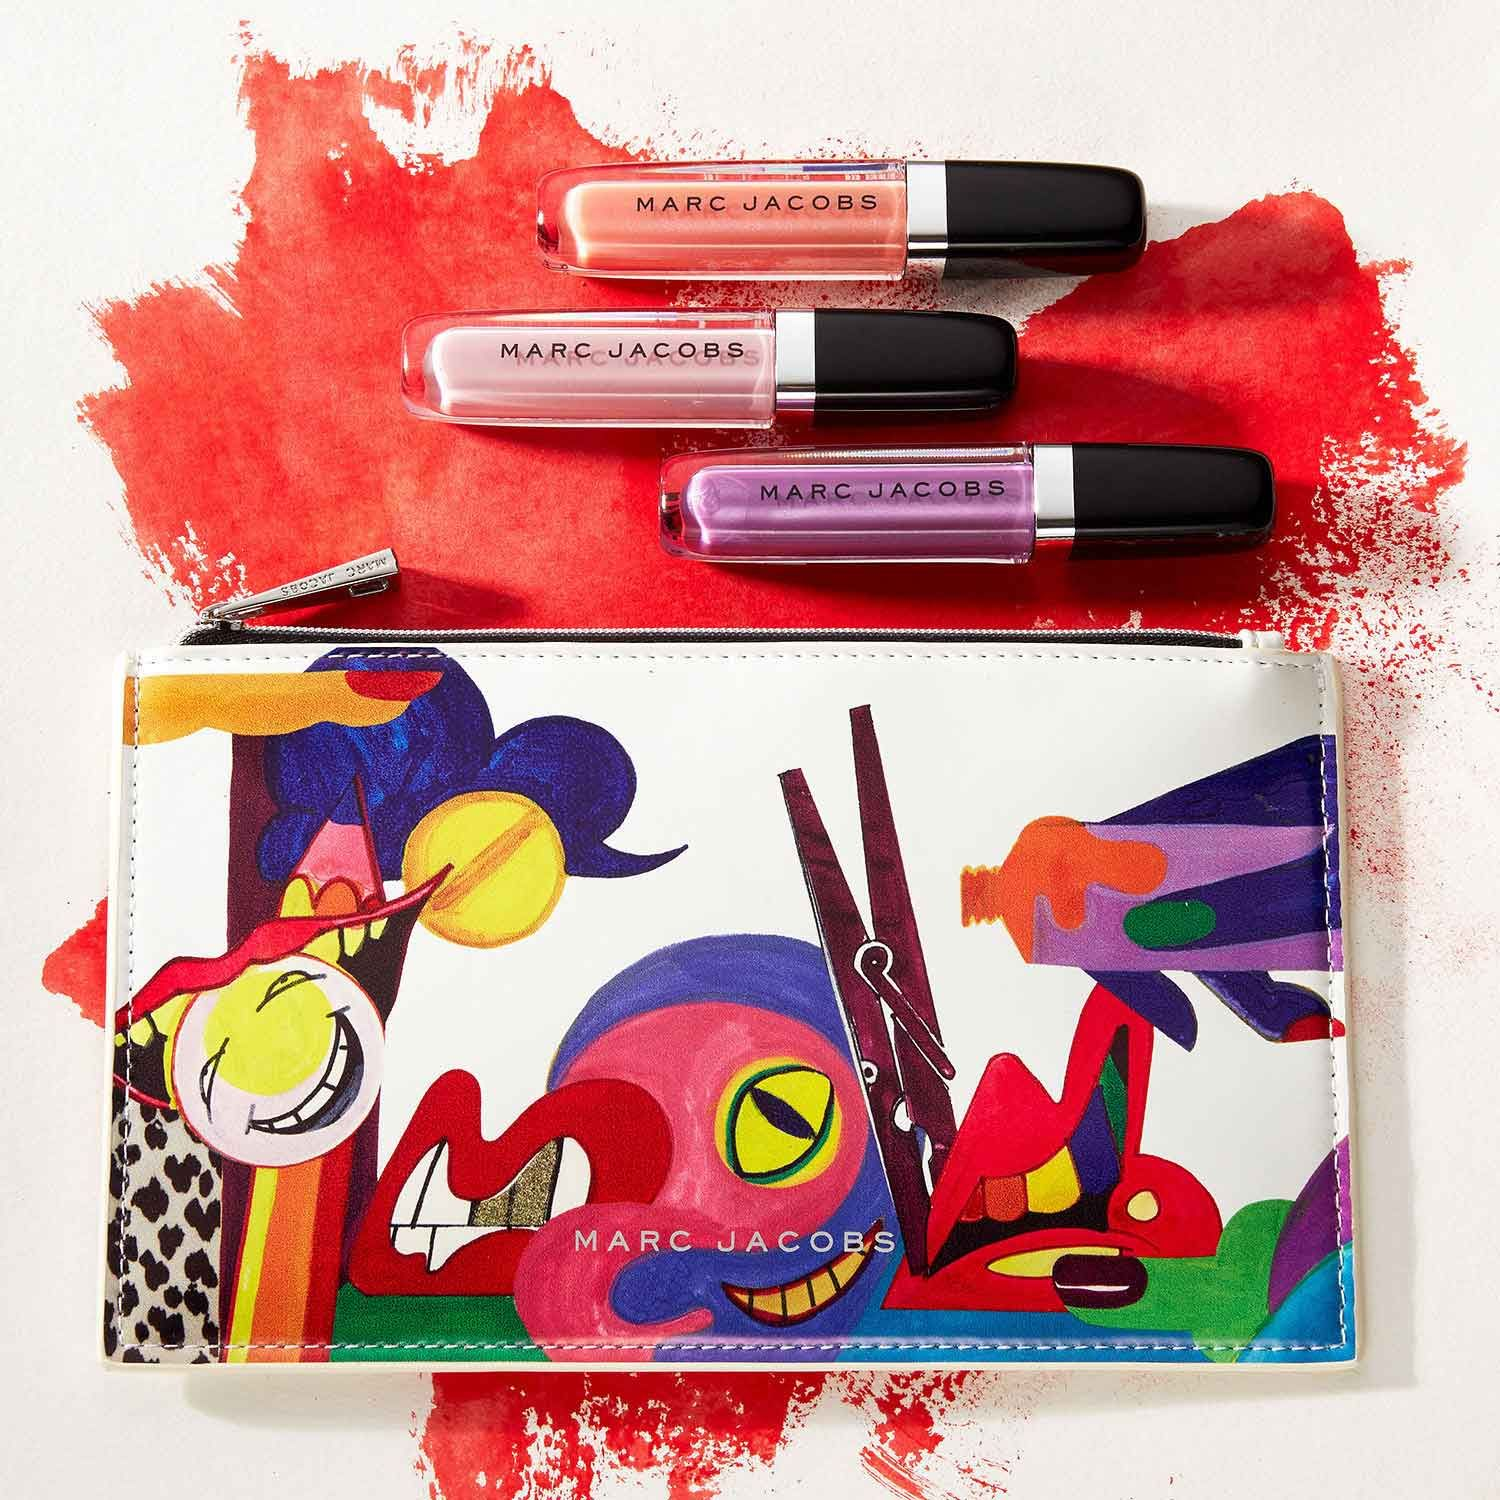 Marc Jacobs Beauty Enamored with a Twist Marc jacobs